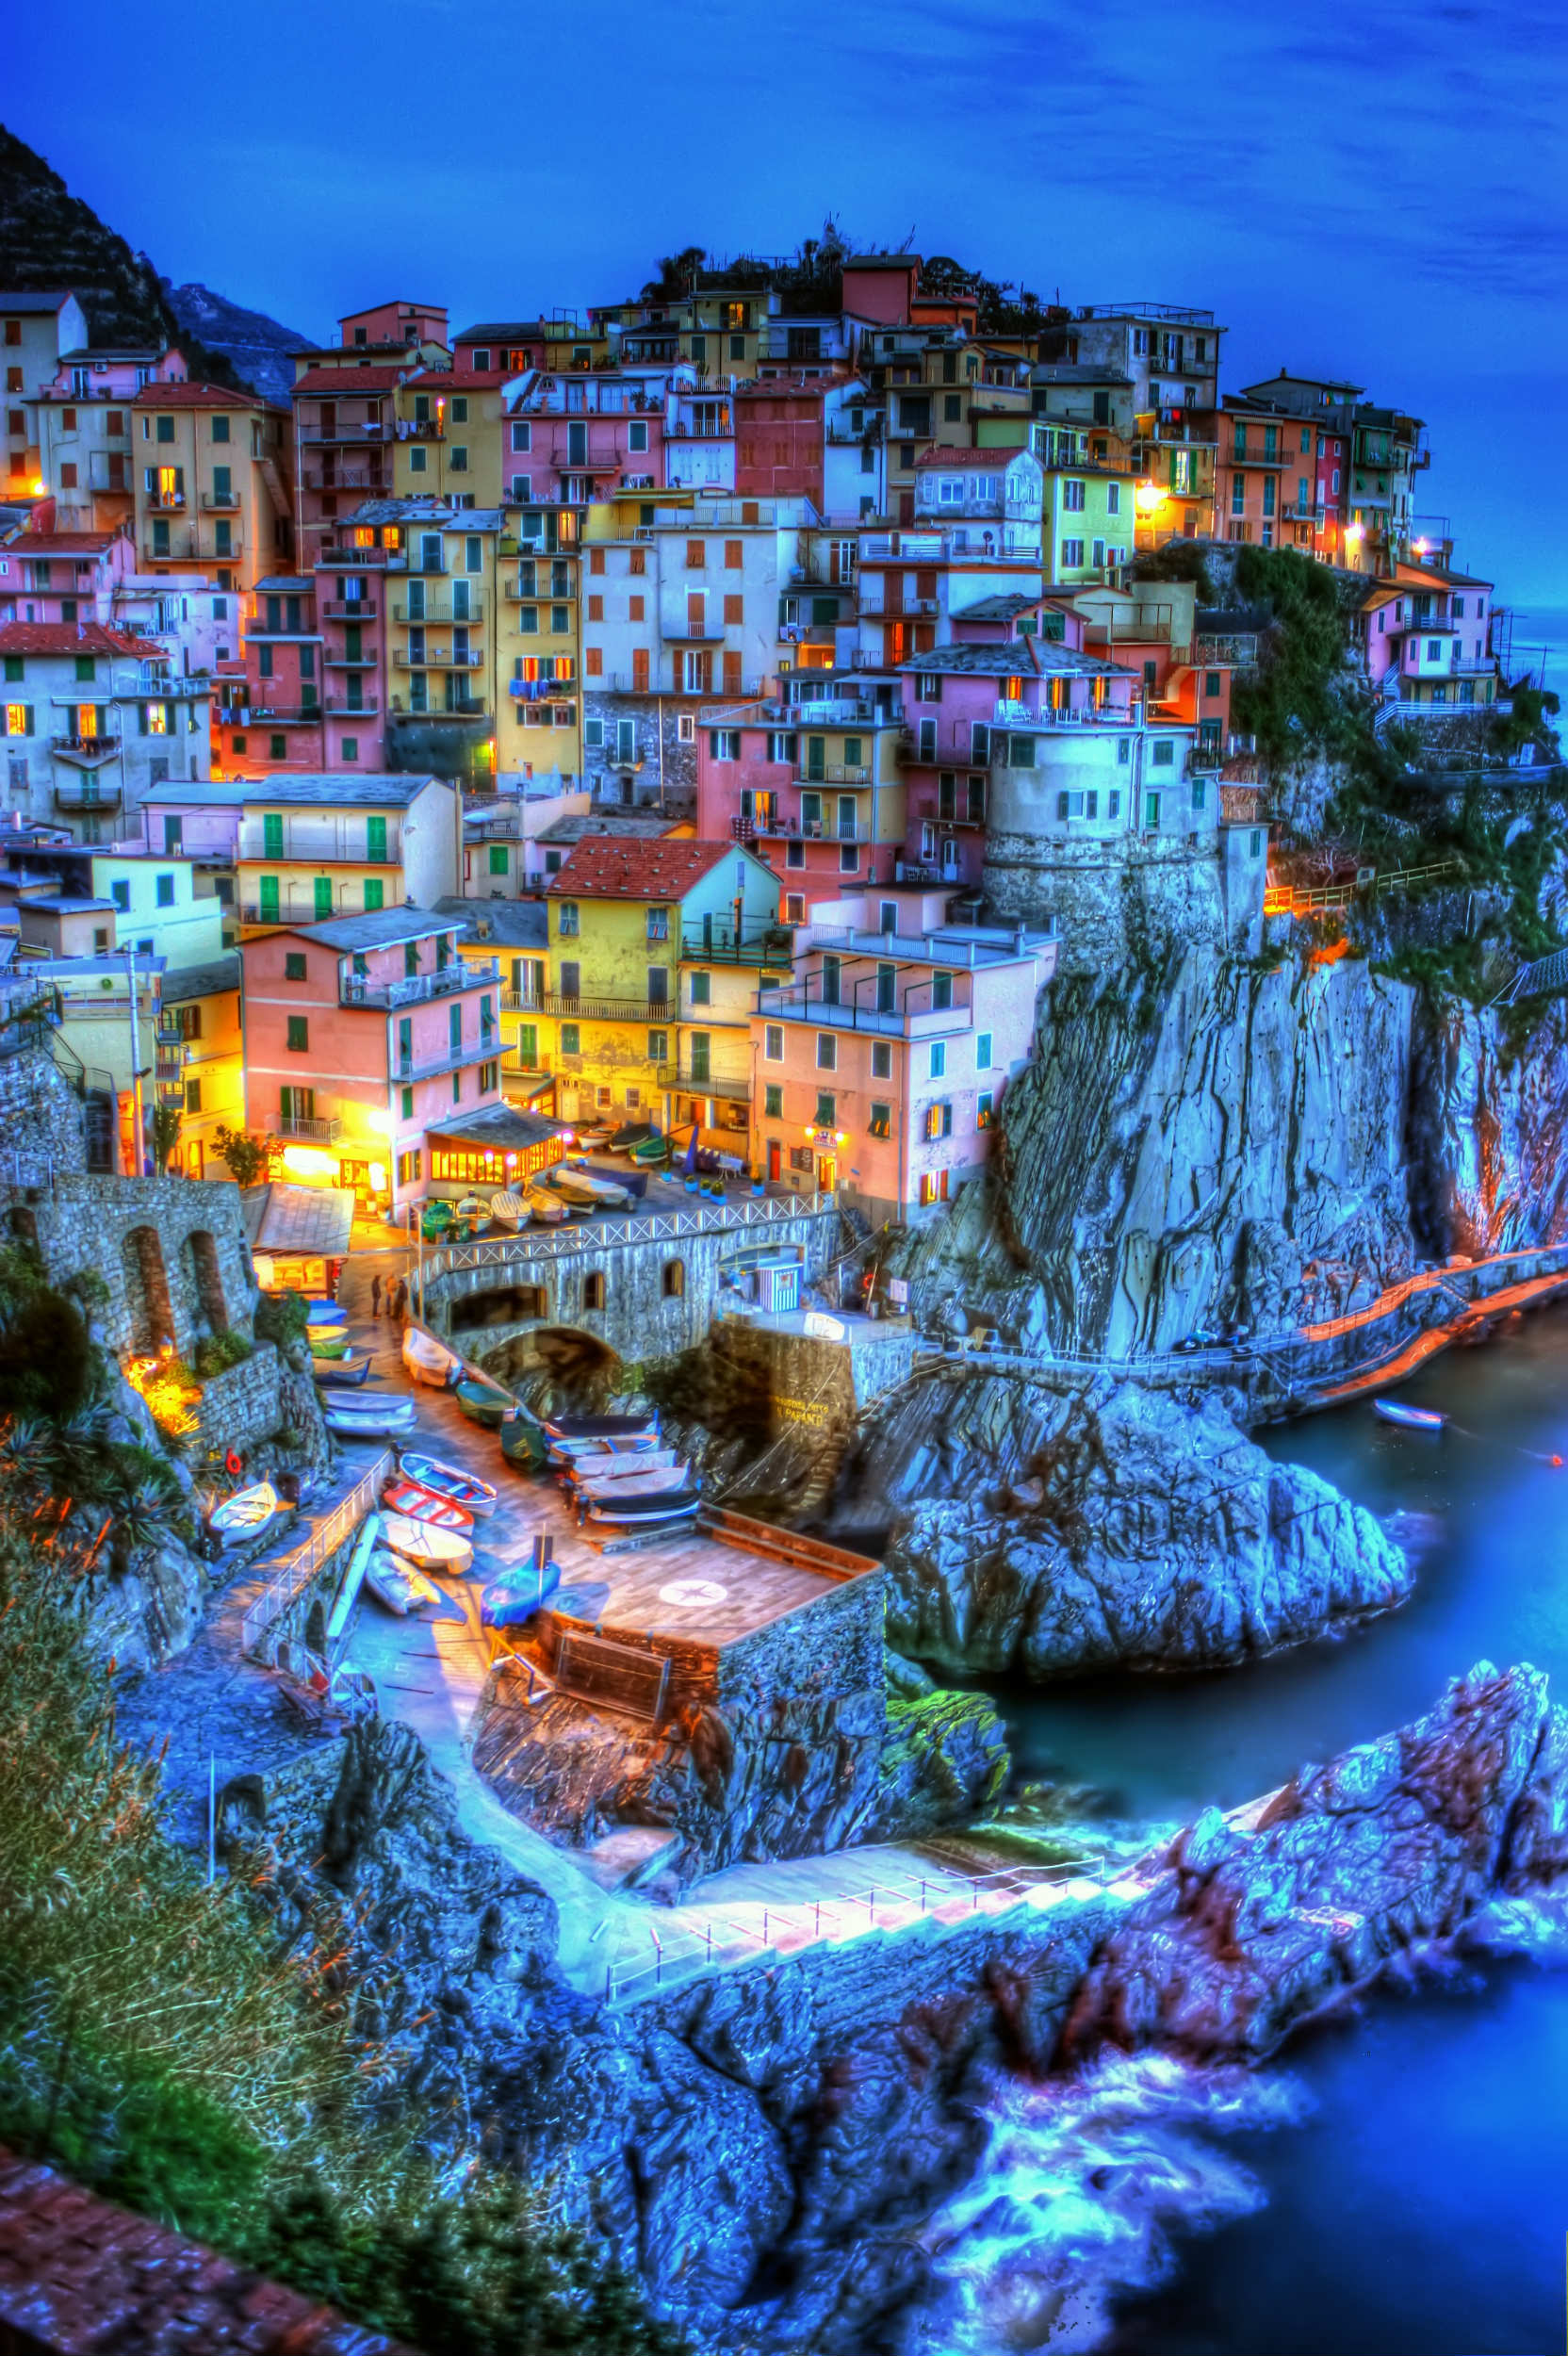 10 Amazing Places to Visit Part 2   Tinyme Blog Spectacular and scenic landscape of Cinque Terre   10 Amazing Places to  Visit Part 2